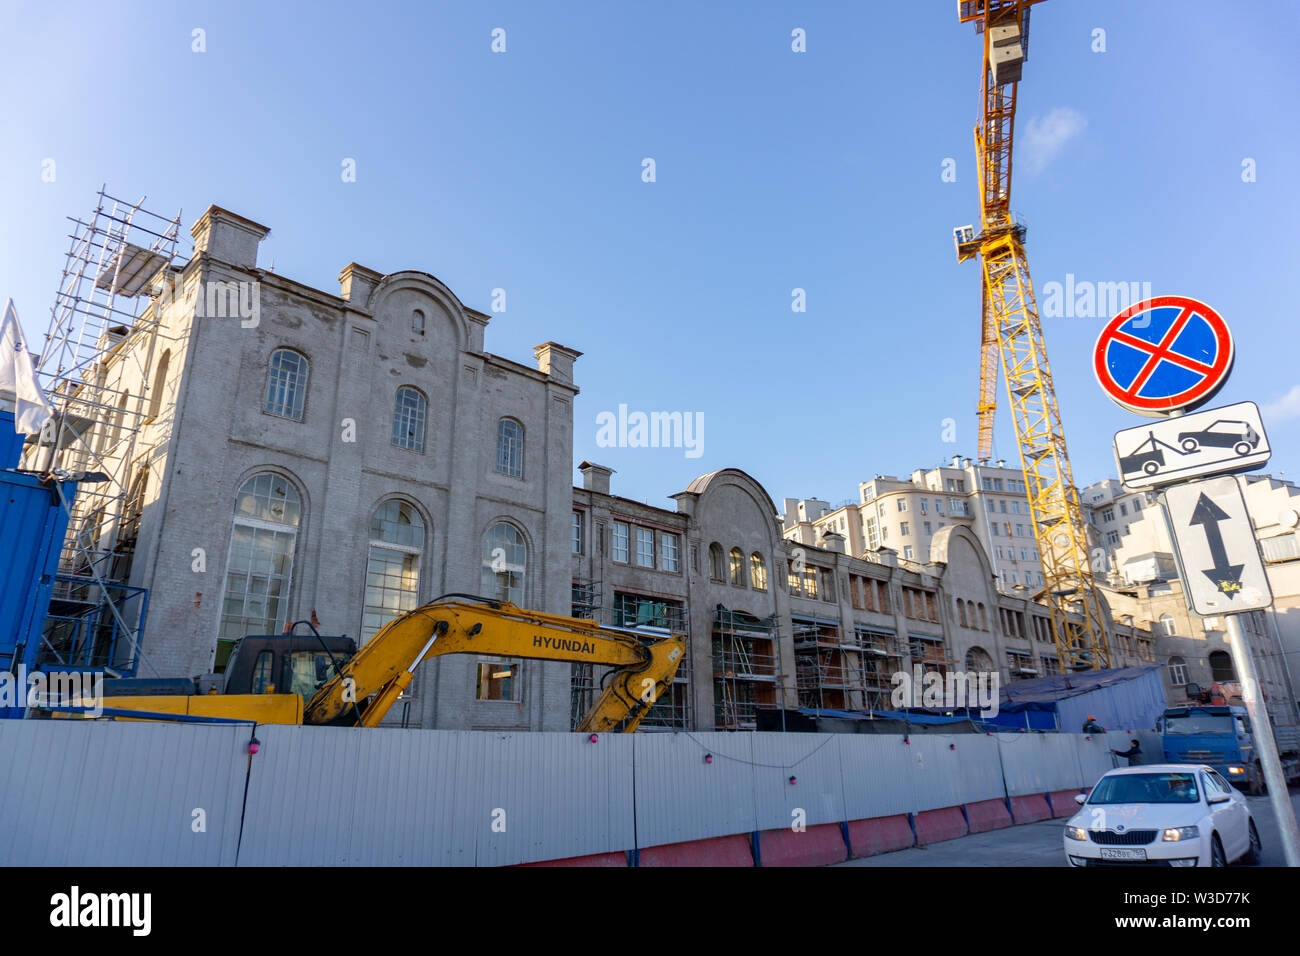 Moscow, Russia, April 04, 2019: Yellow Hyundai Robex 330 Crawler Excavator on a construction site in the background of the building - Stock Image